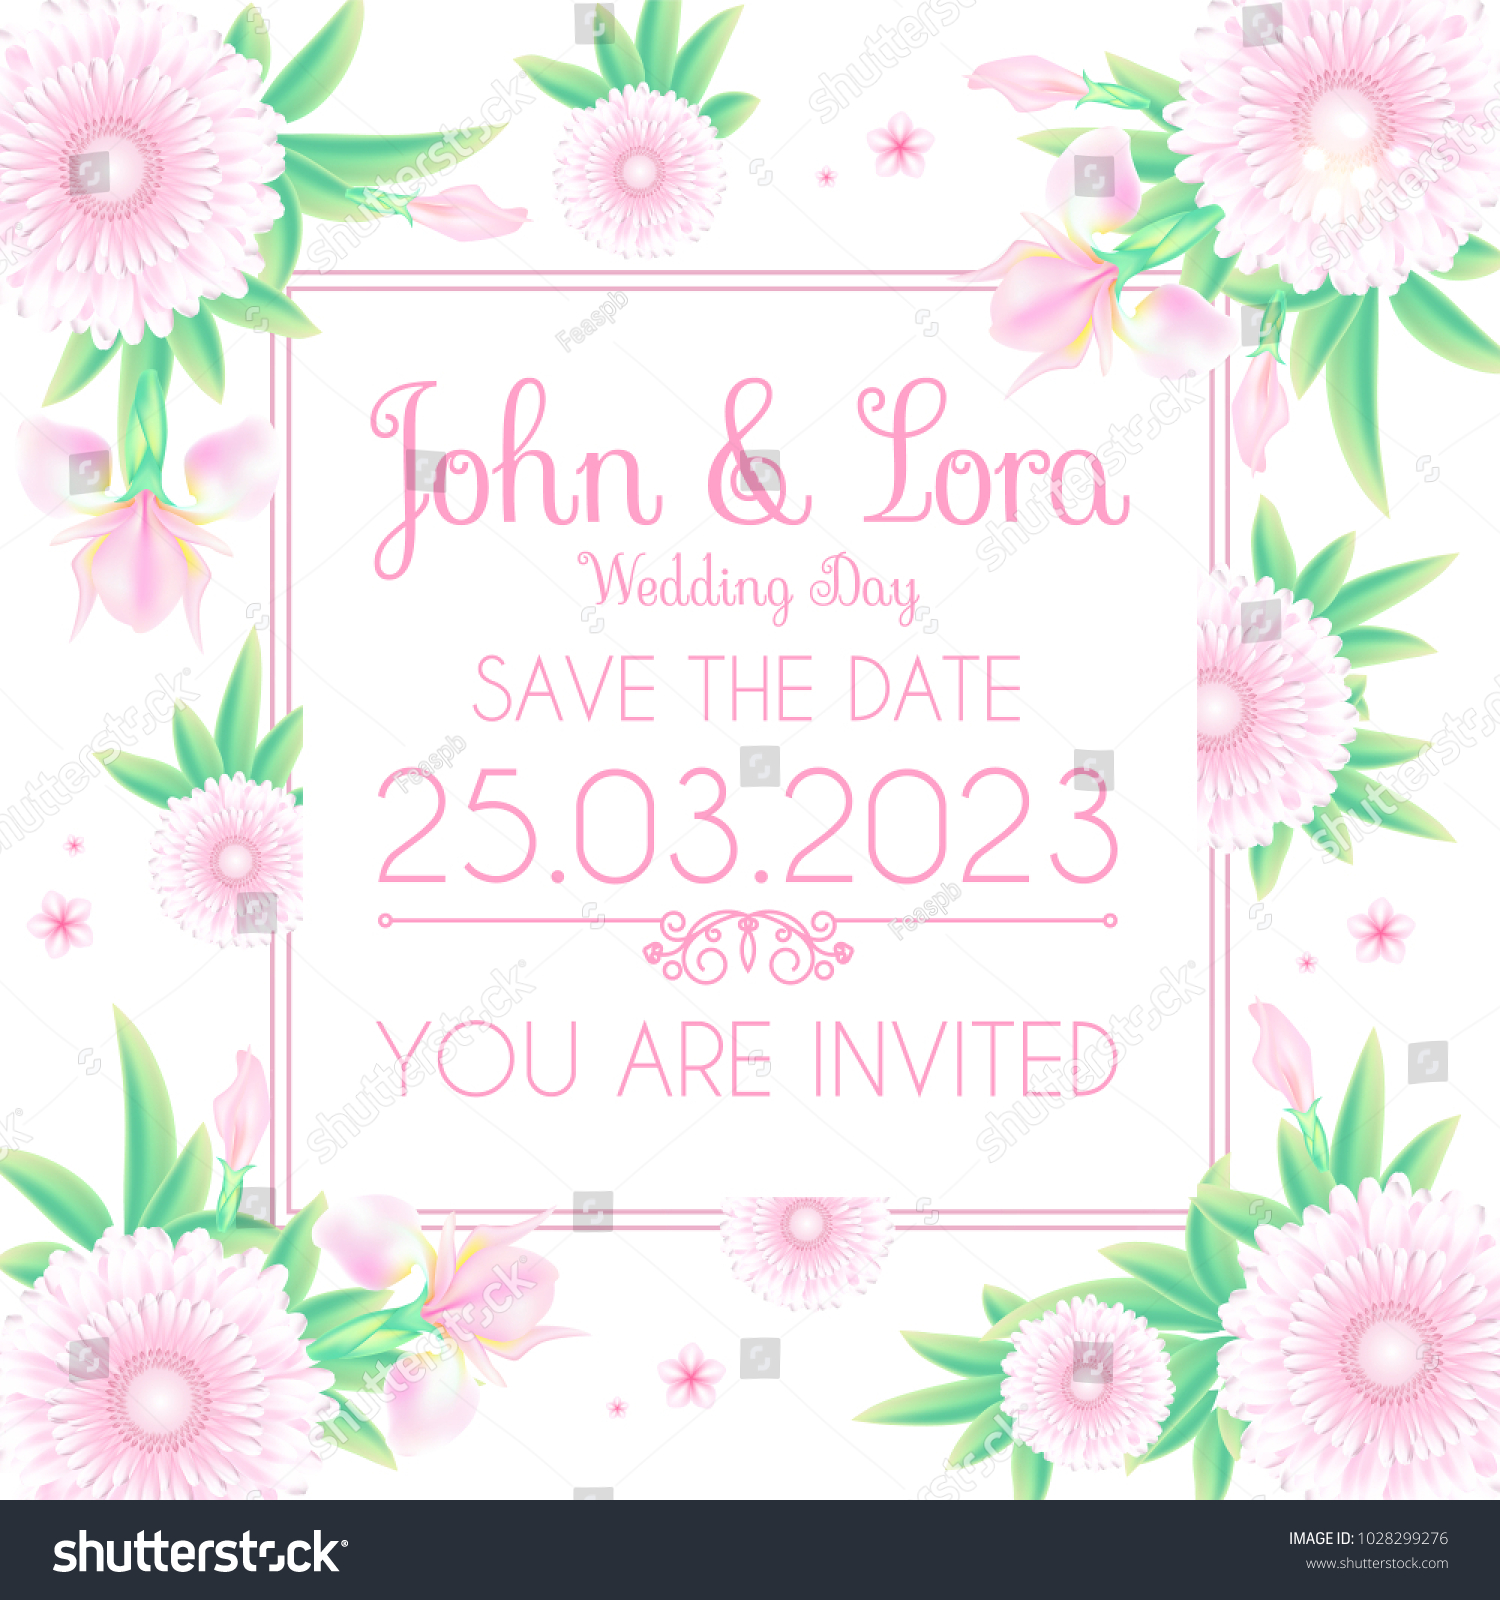 Happy wedding day greeting card template stock vector 1028299276 happy wedding day greeting card template stock vector 1028299276 shutterstock m4hsunfo